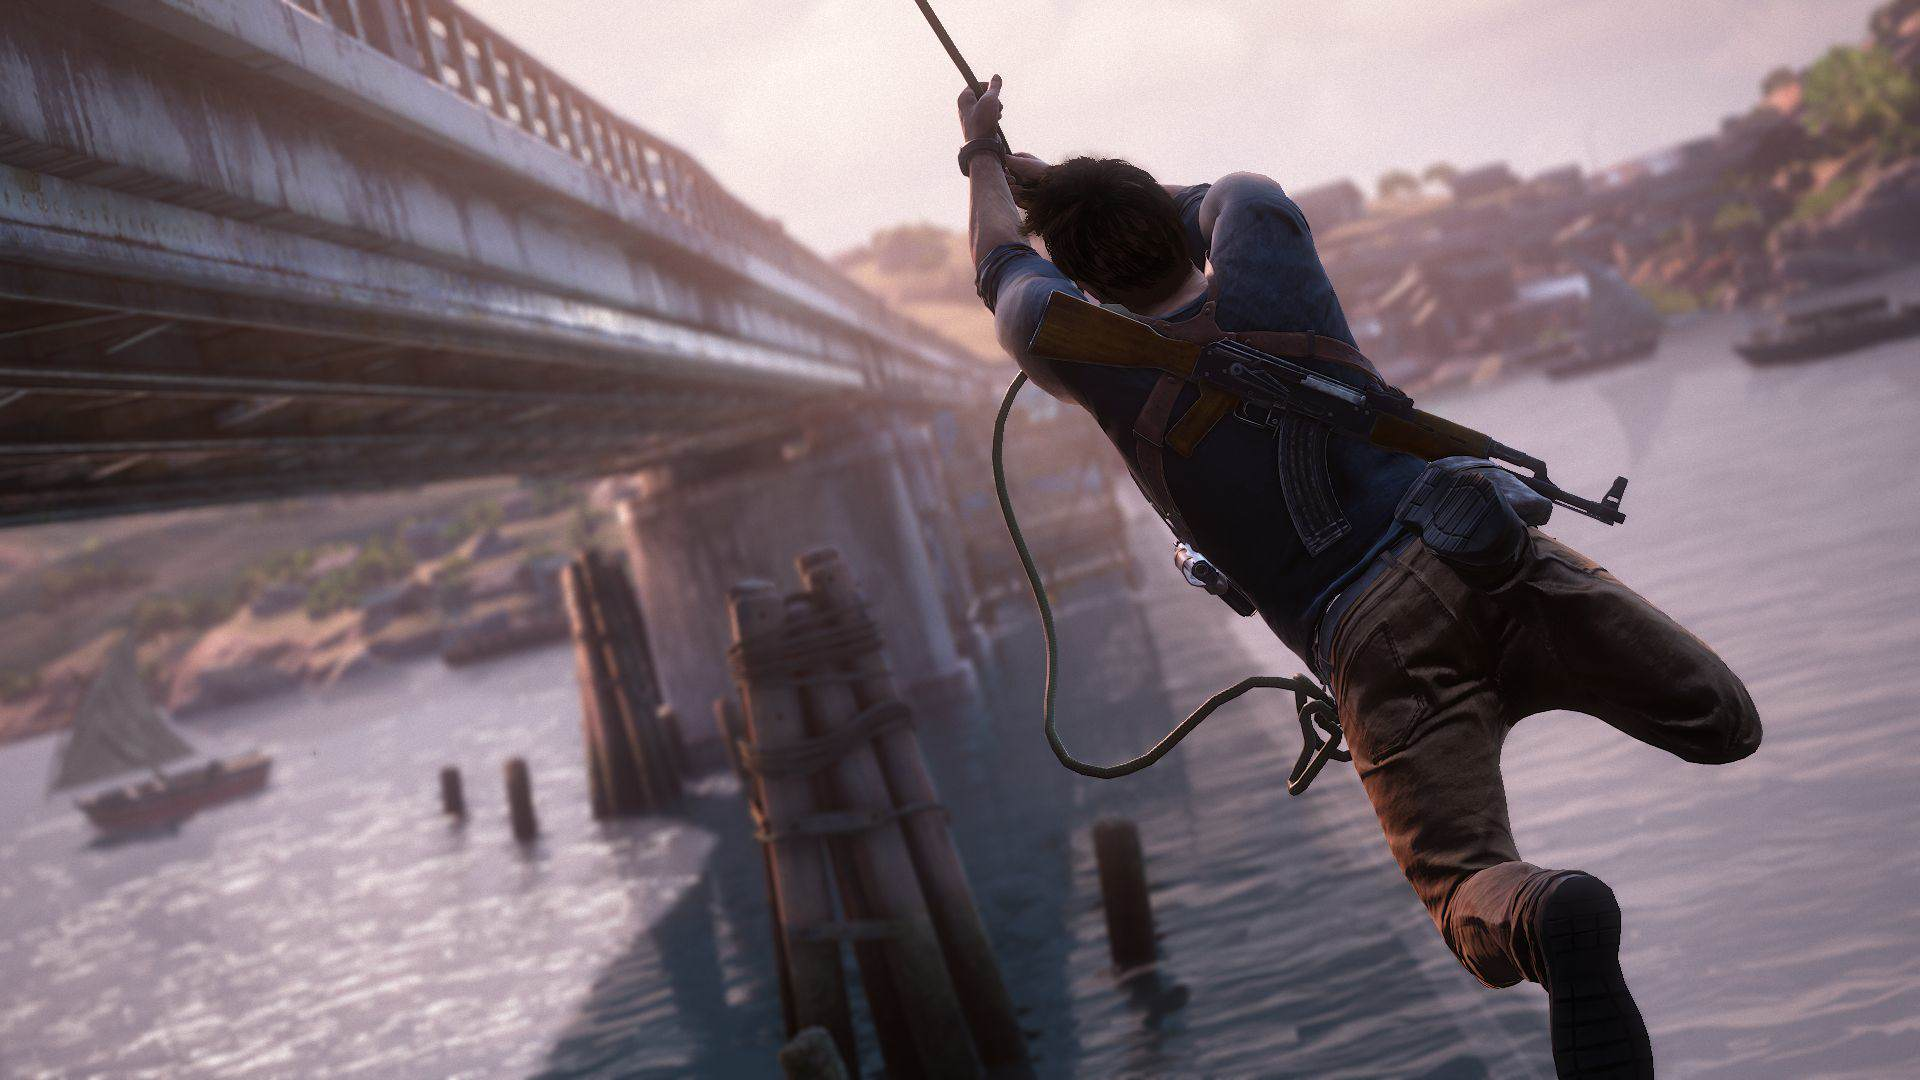 Uncharted 4s Story Changed 100% After New Directors Joined 2759115 uncharted 4 drake rope bridge 1434429051